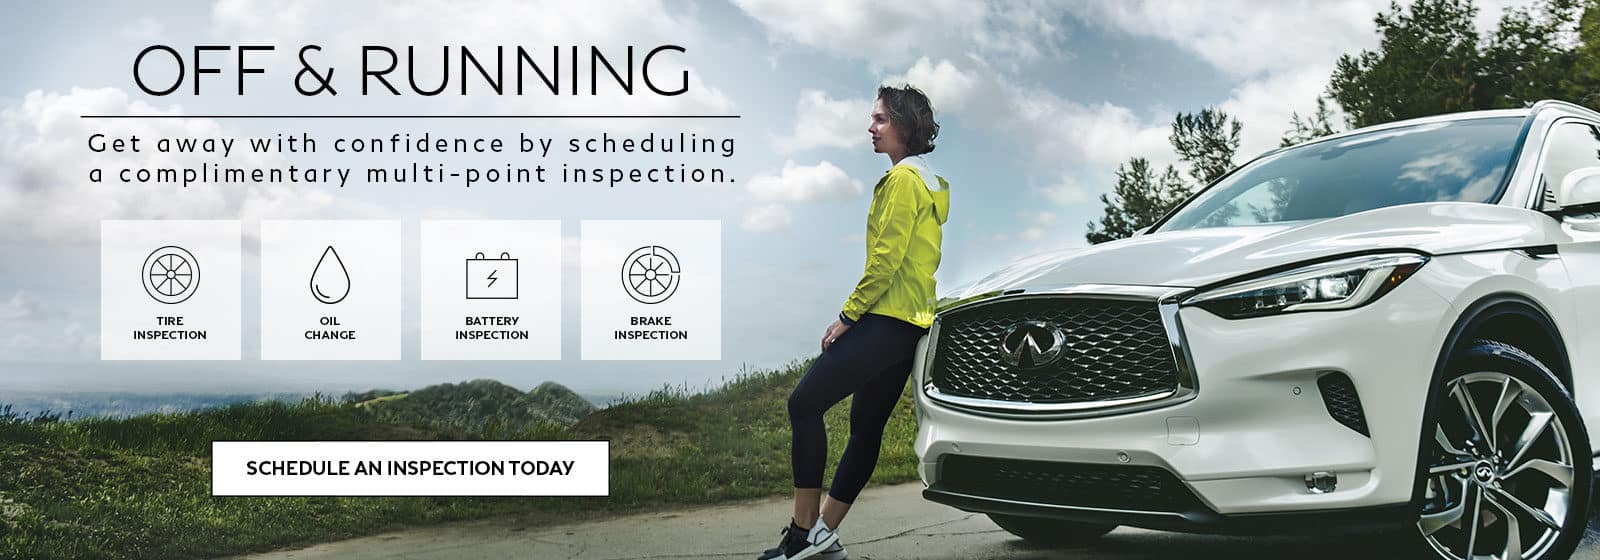 Off & Running. Schedule an inspection today.